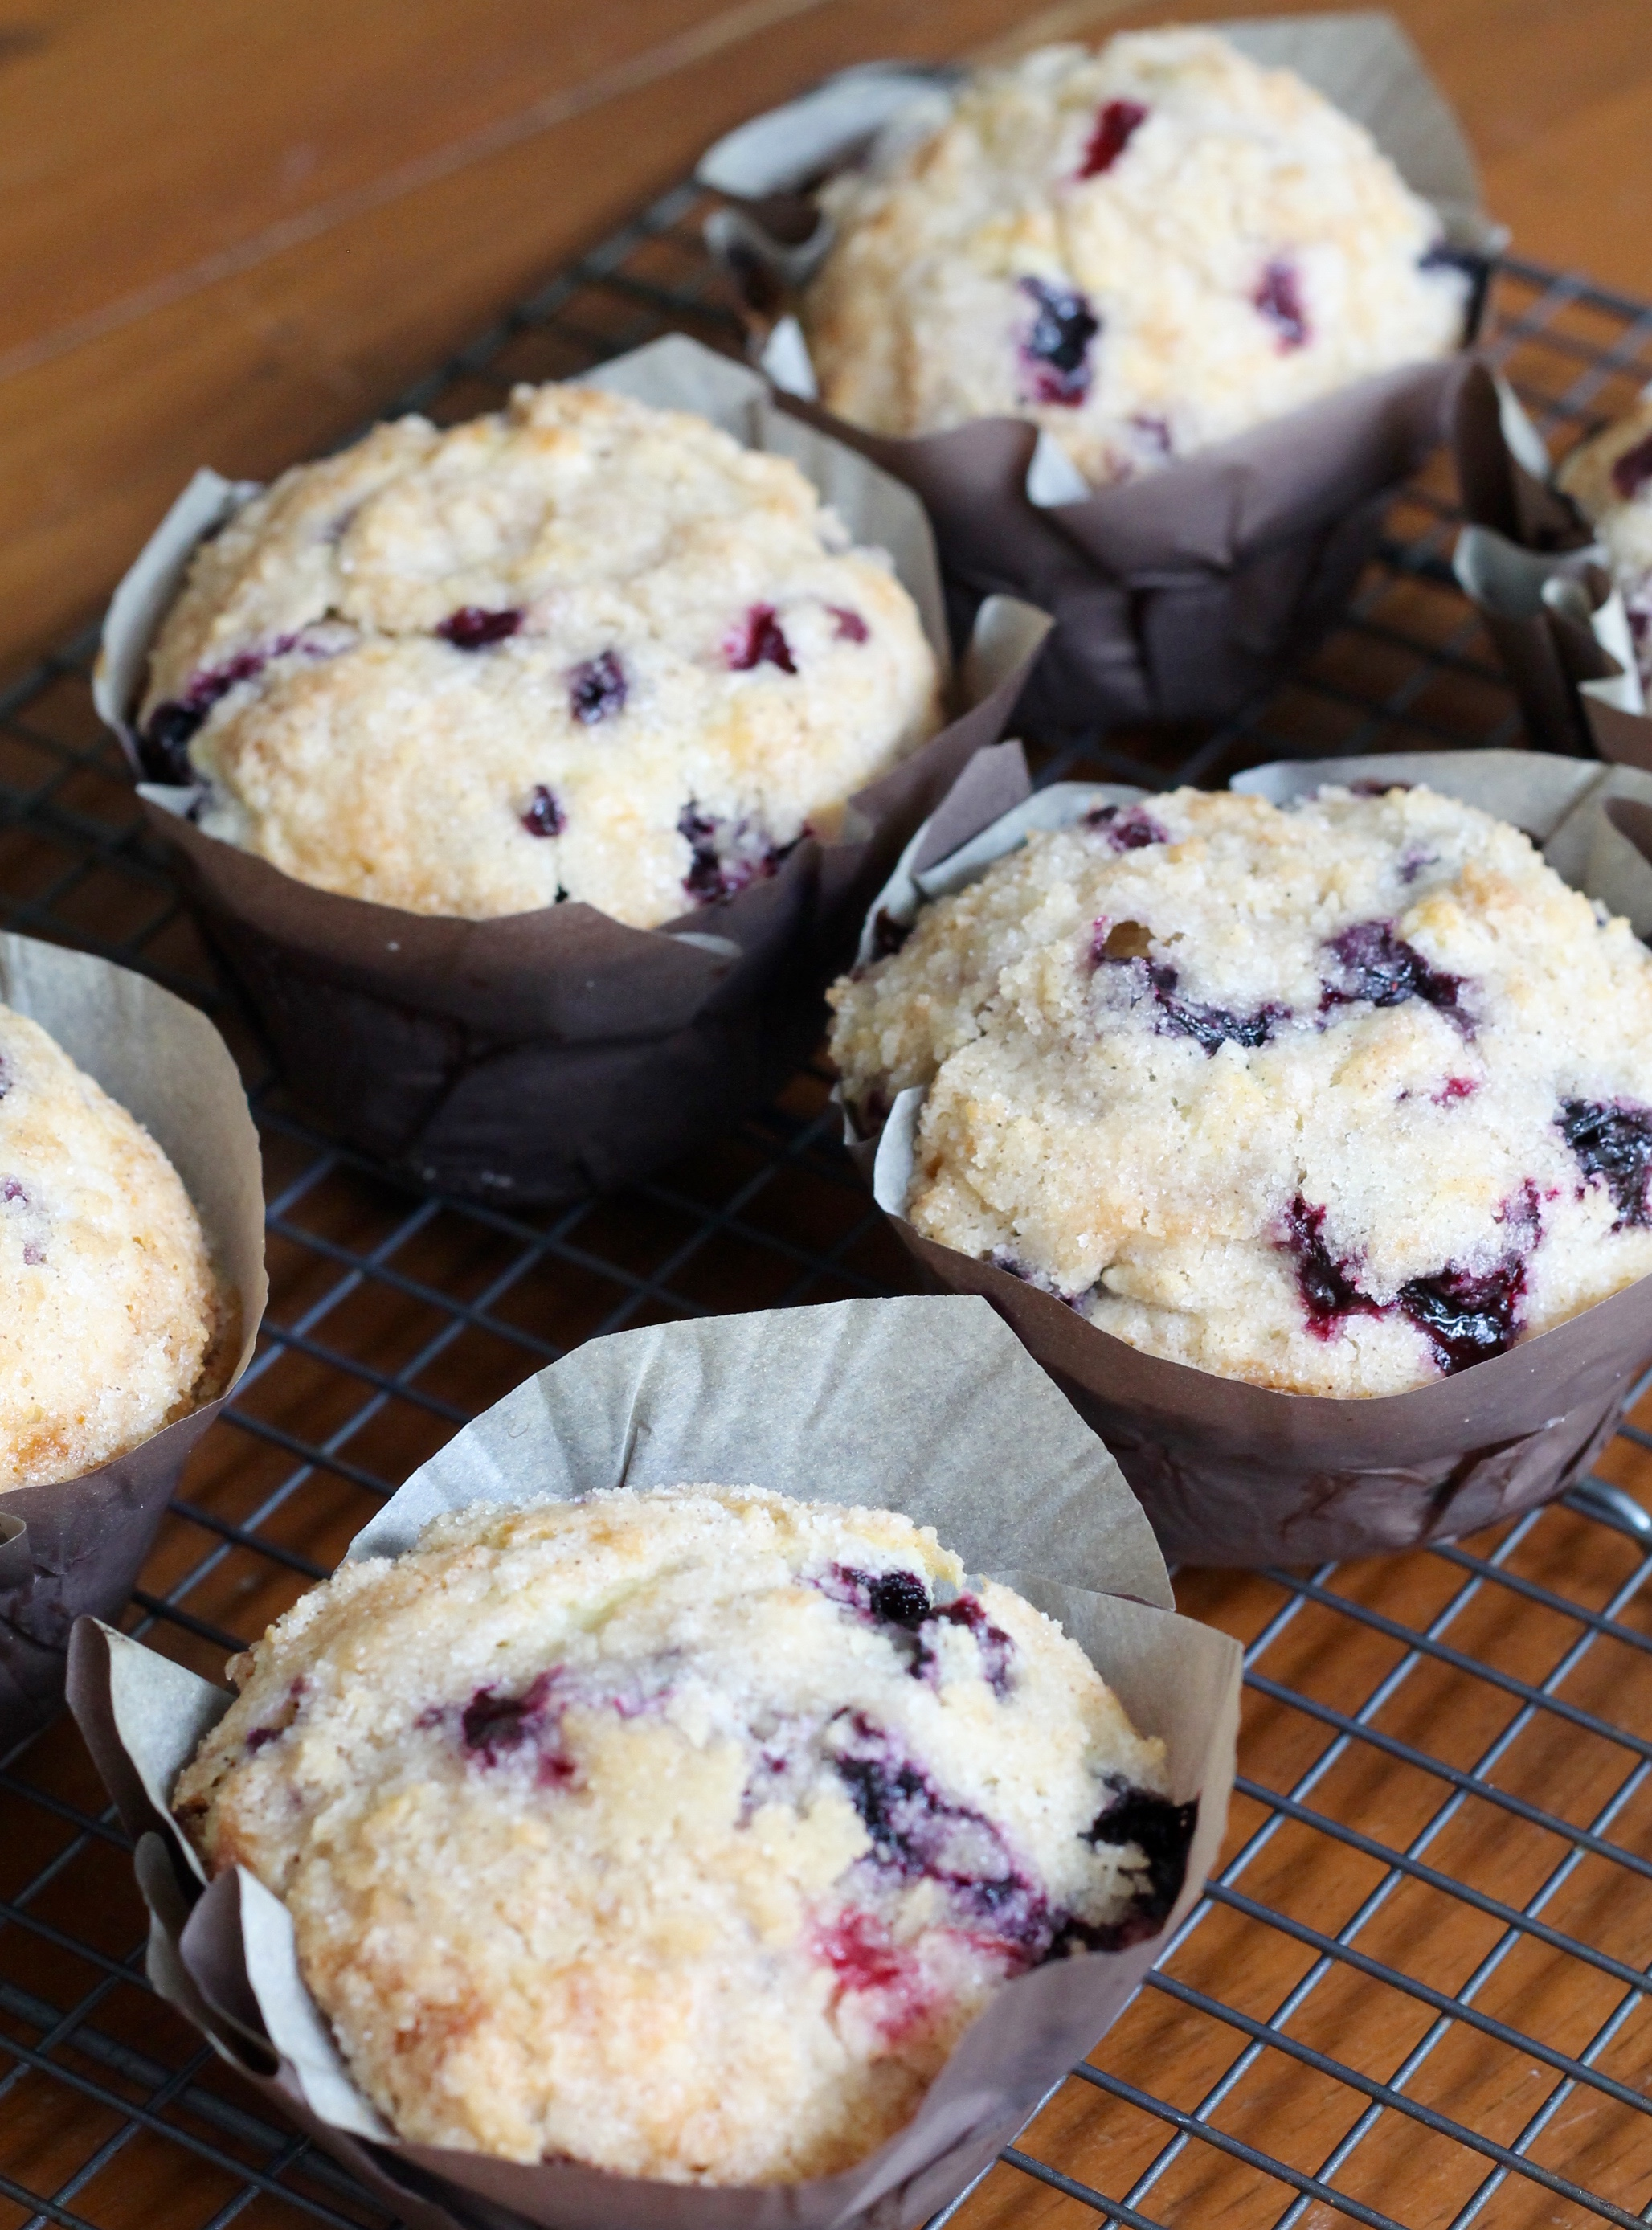 IMG 3035 - White Chocolate Blueberry Muffins Recipe